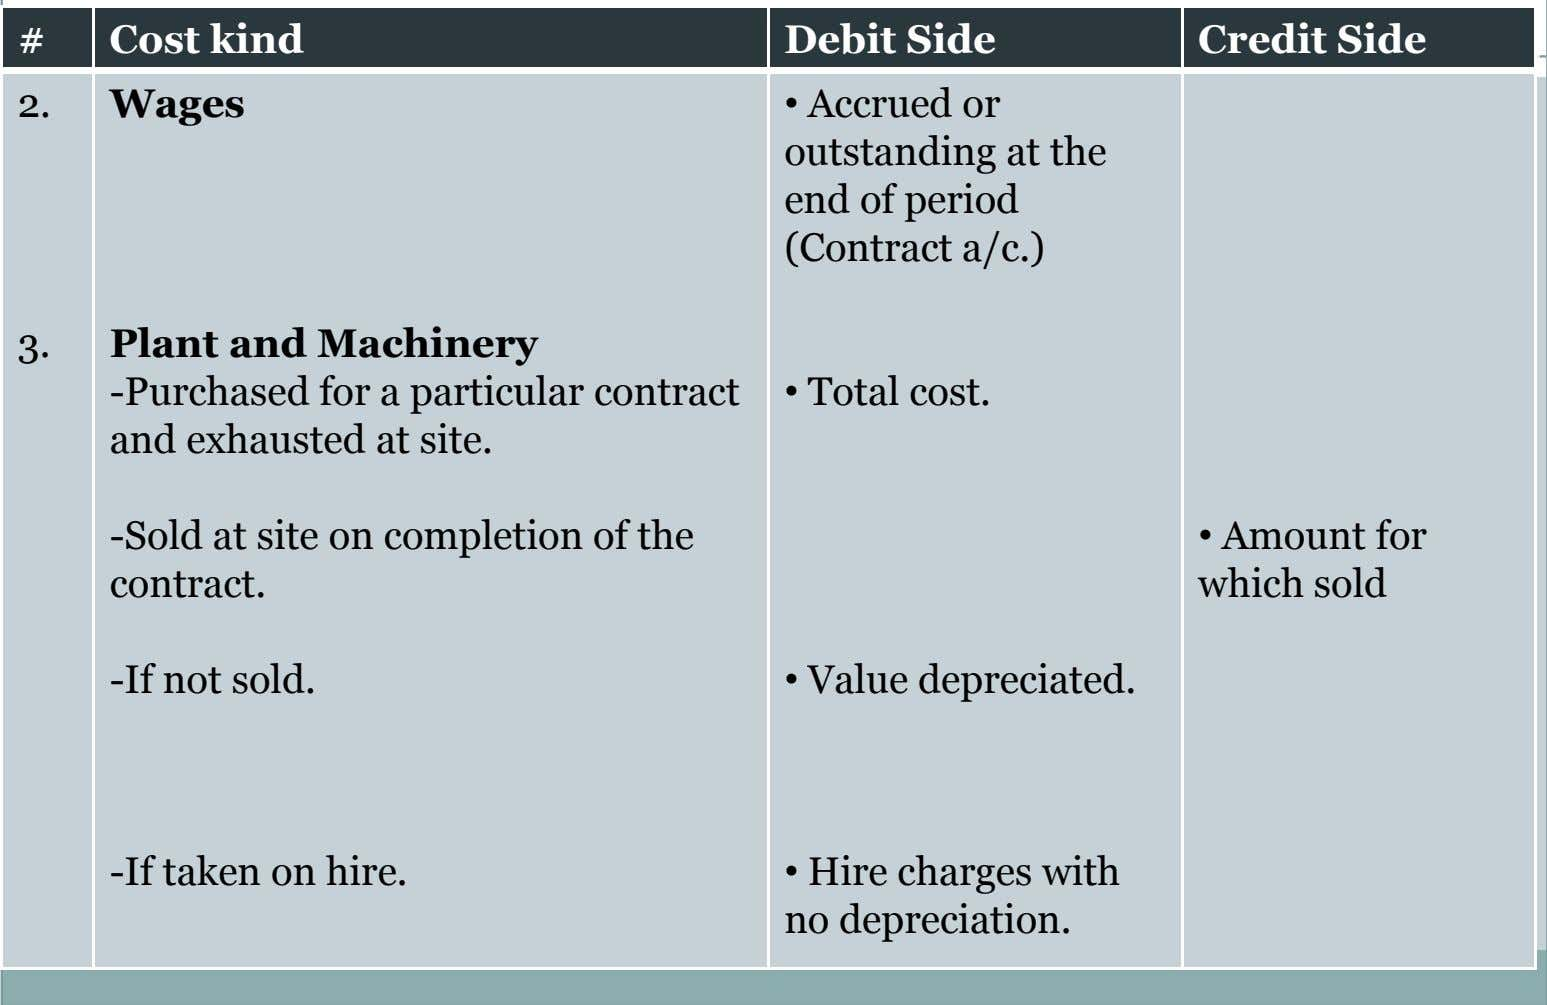 # Cost kind Debit Side Credit Side 2. Wages • Accrued or outstanding at the